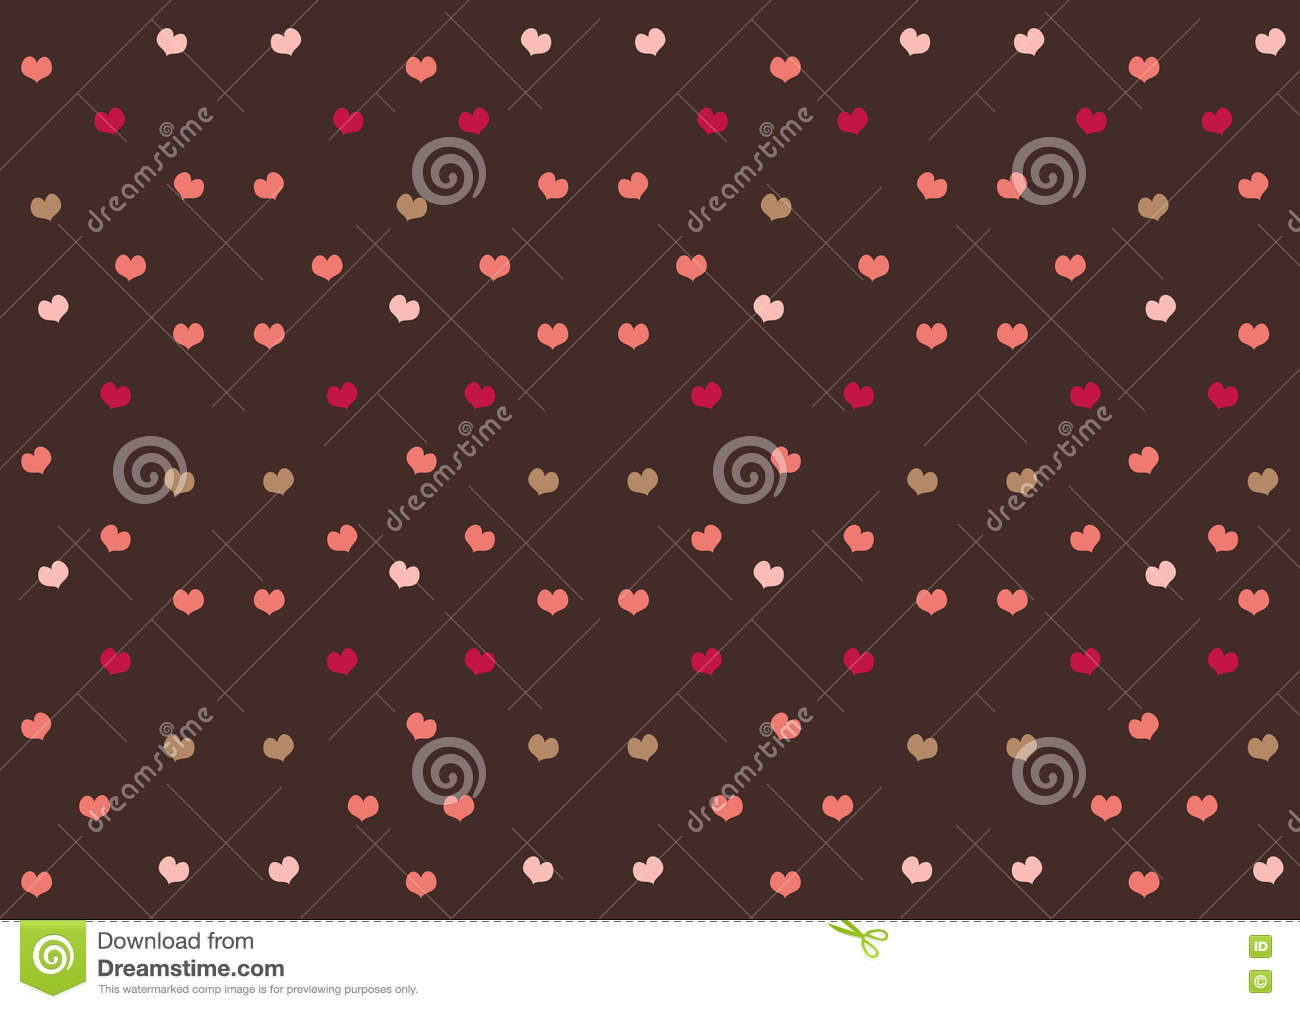 Pink hearts on chocolate brown background sweet cute pattern pink hearts on chocolate brown background sweet cute pattern wallpaper valentine day celebrate voltagebd Gallery